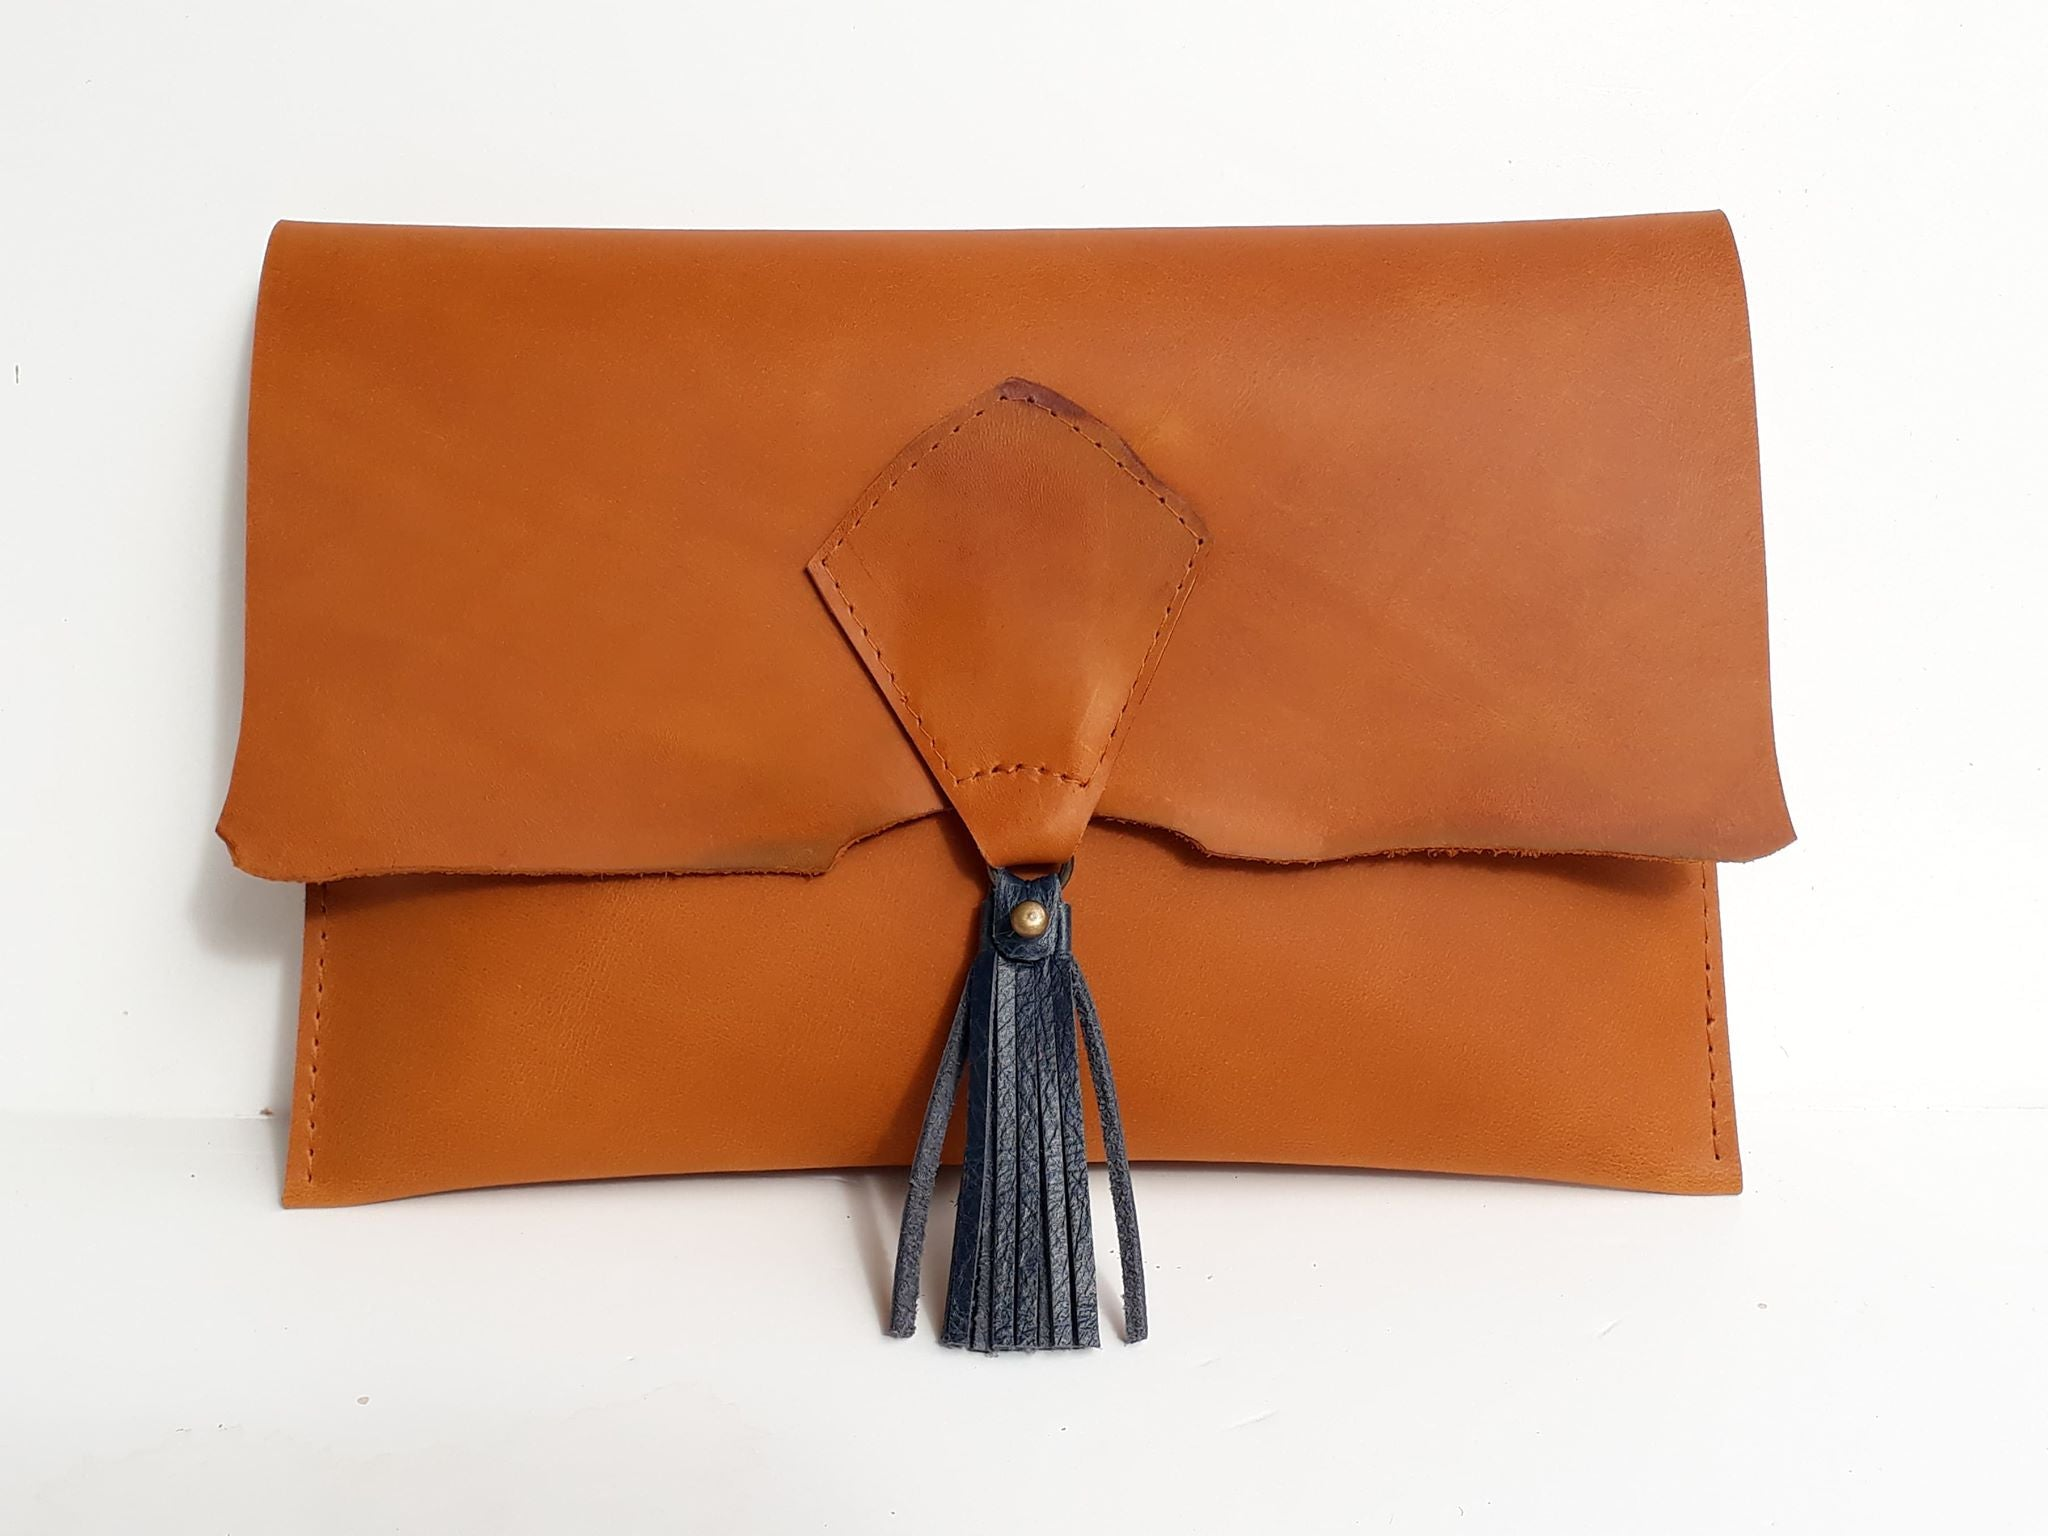 Tassel Clutch - Mustard - Coterie Leather Bags